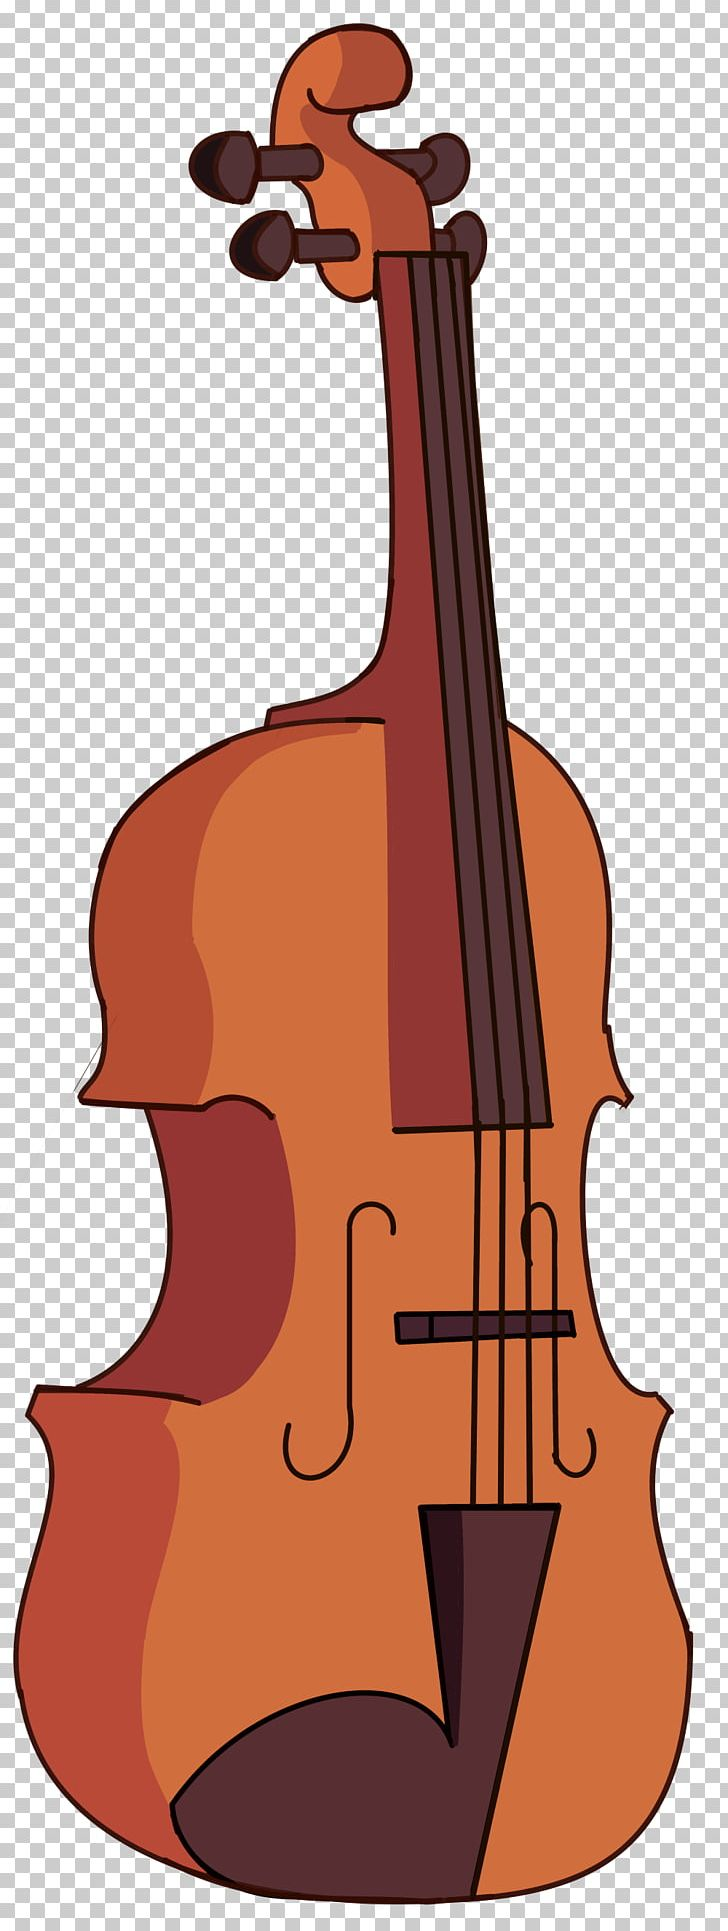 Violin Family Cello Musical Instruments Double Bass PNG, Clipart, Art, Bass Violin, Beak, Bowed String Instrument, Cello Free PNG Download